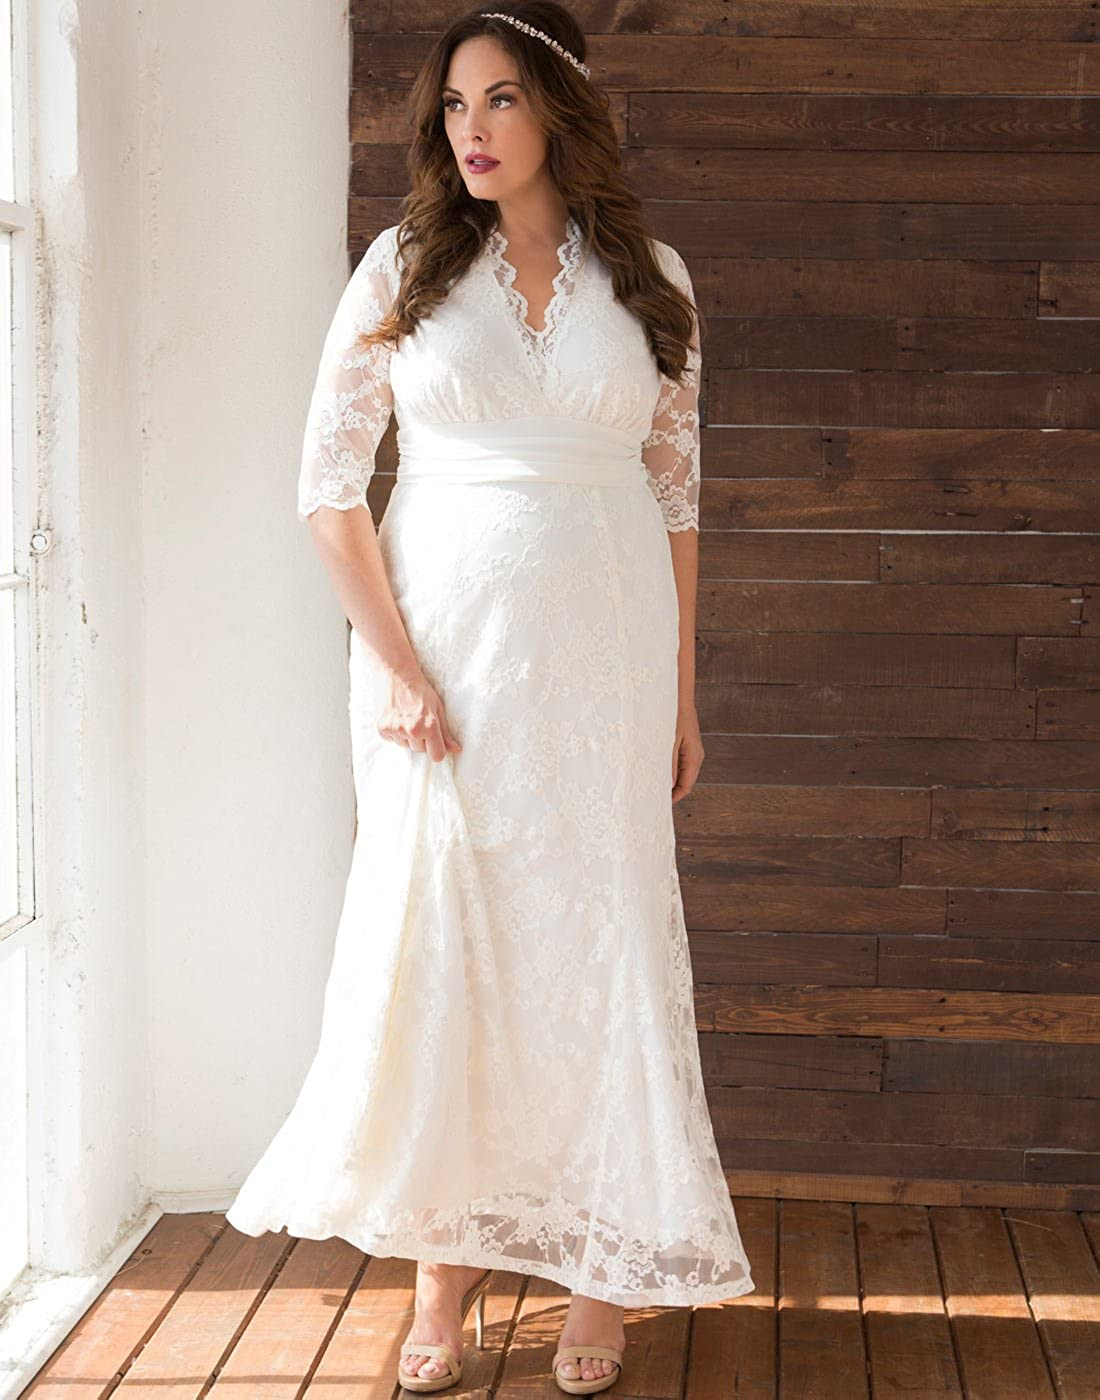 060d2e9fced4 Kiyonna Women s Plus Size Amour Lace Wedding Gown at Amazon Women s  Clothing store